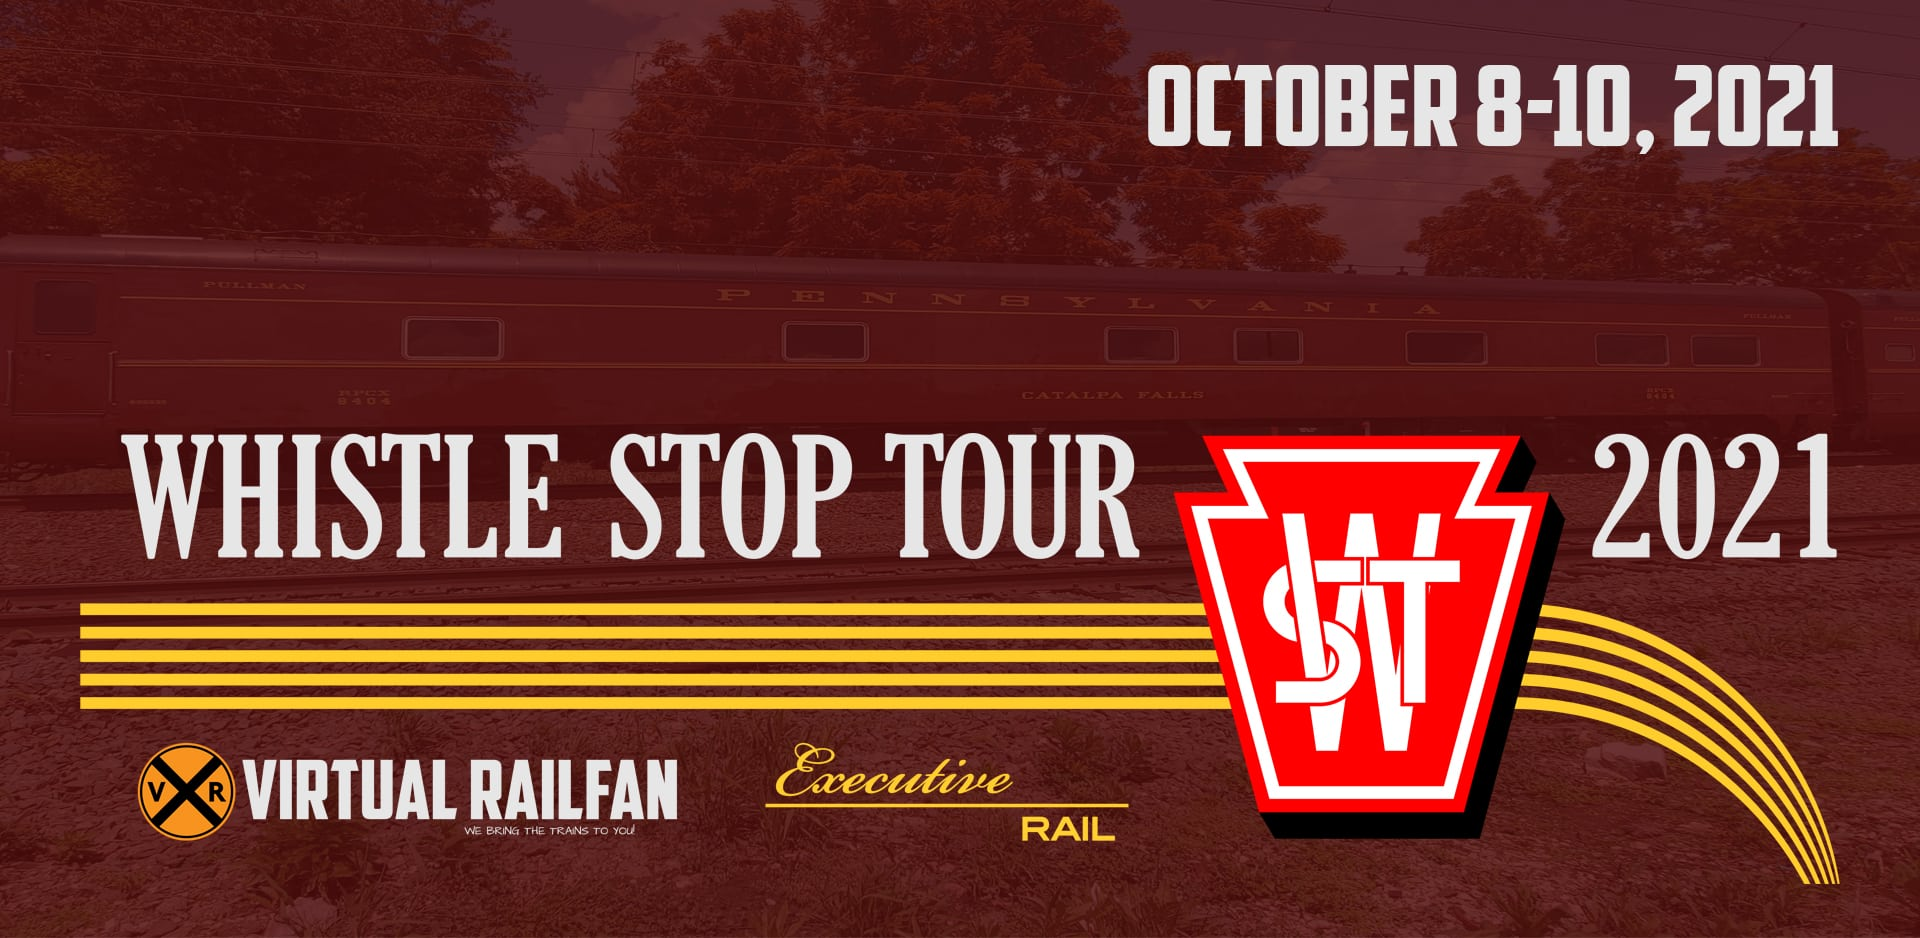 Whistle Stop Tour is Back for 2021!